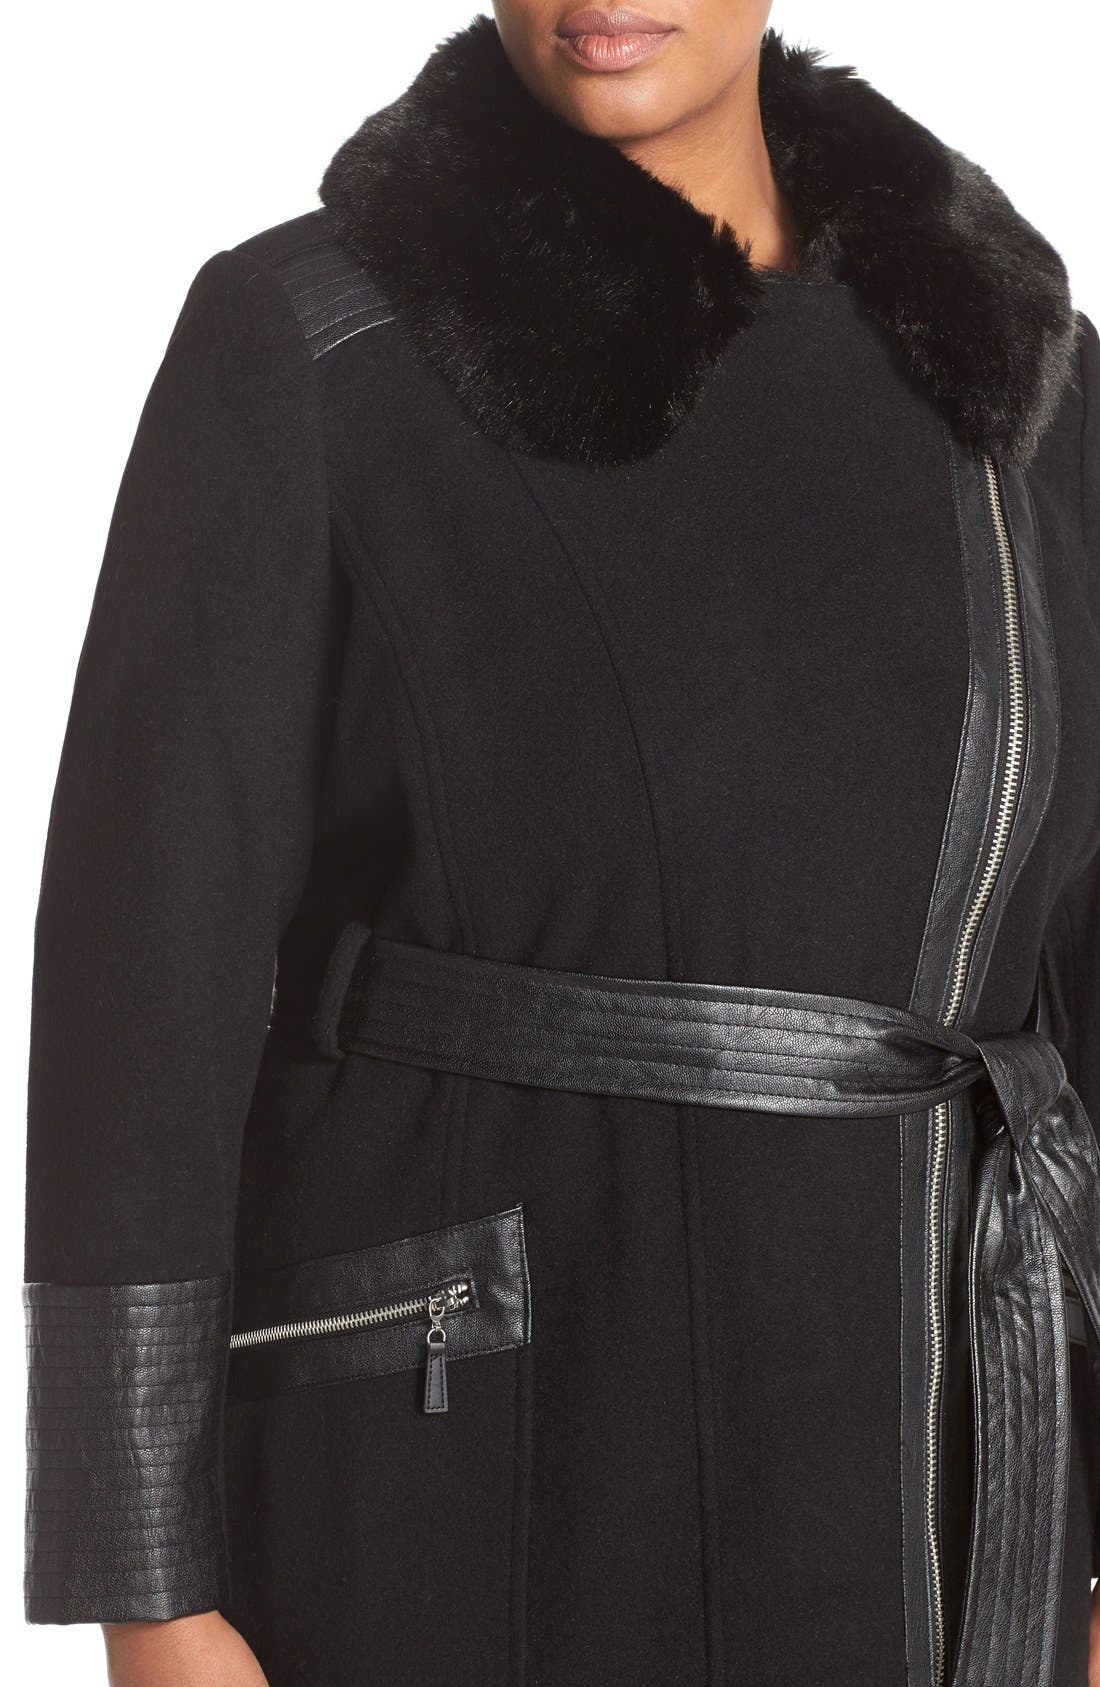 Asymmetrical Wool Blend Coat with Faux Fur Collar,                             Alternate thumbnail 2, color,                             001